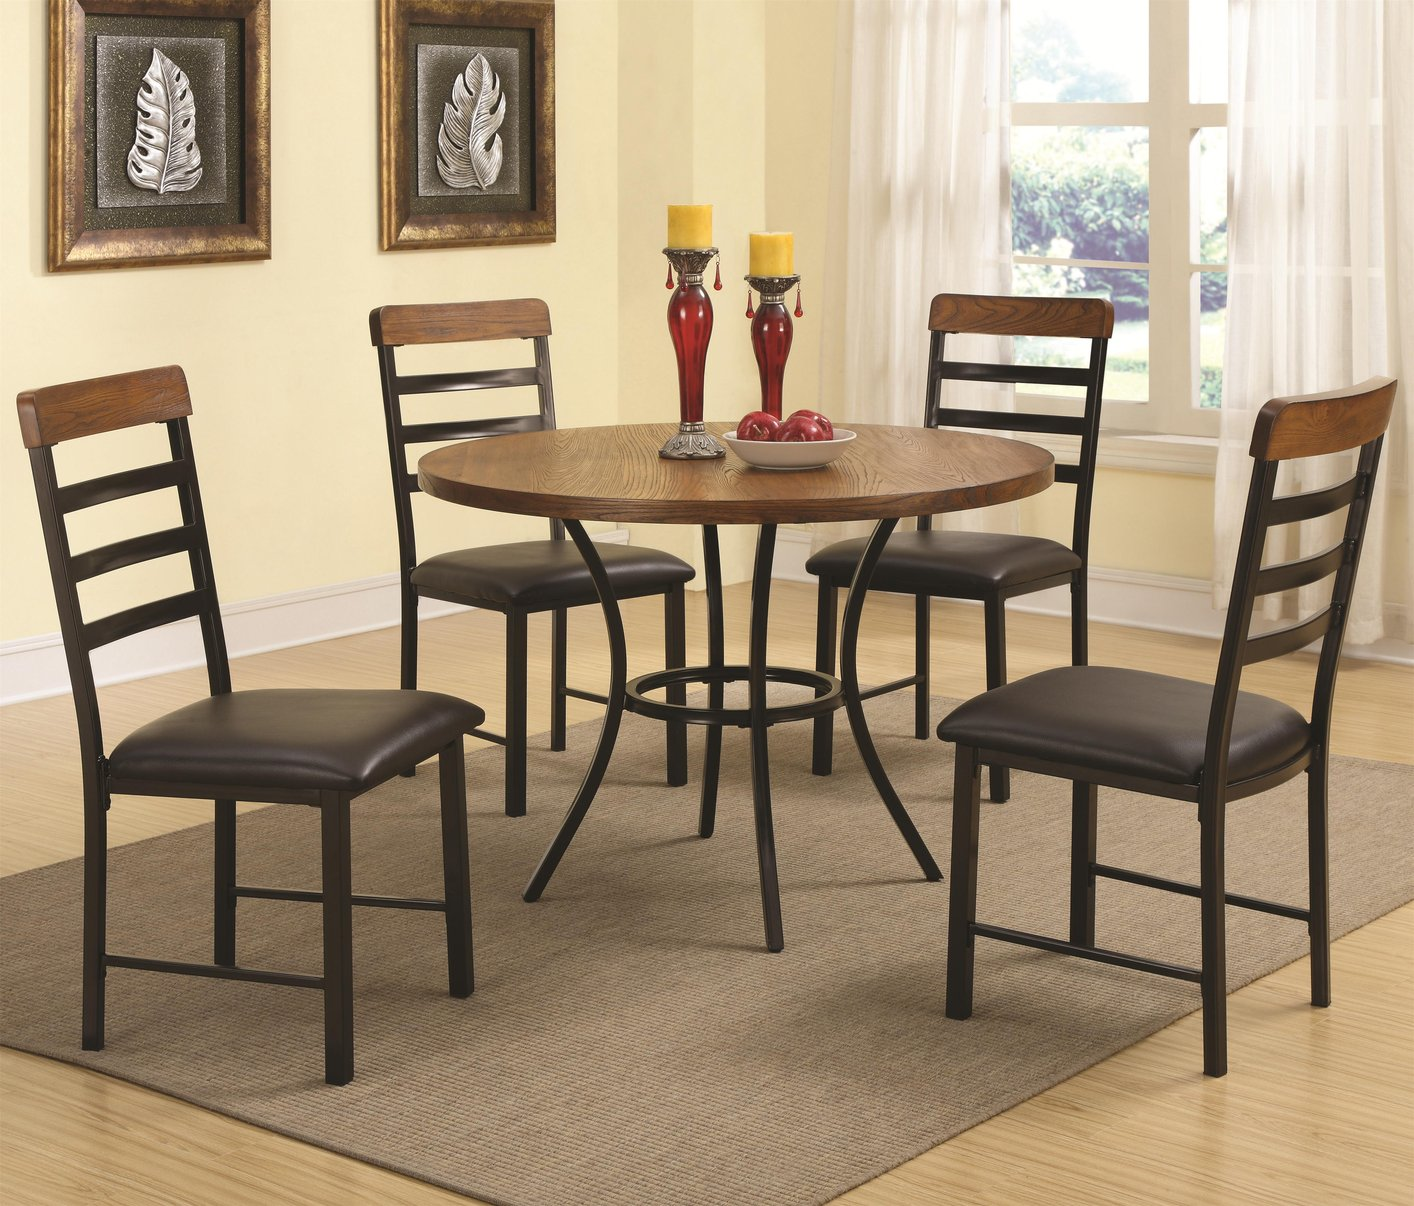 black wood dining table and chair set - Black Wood Dining Table And Chairs